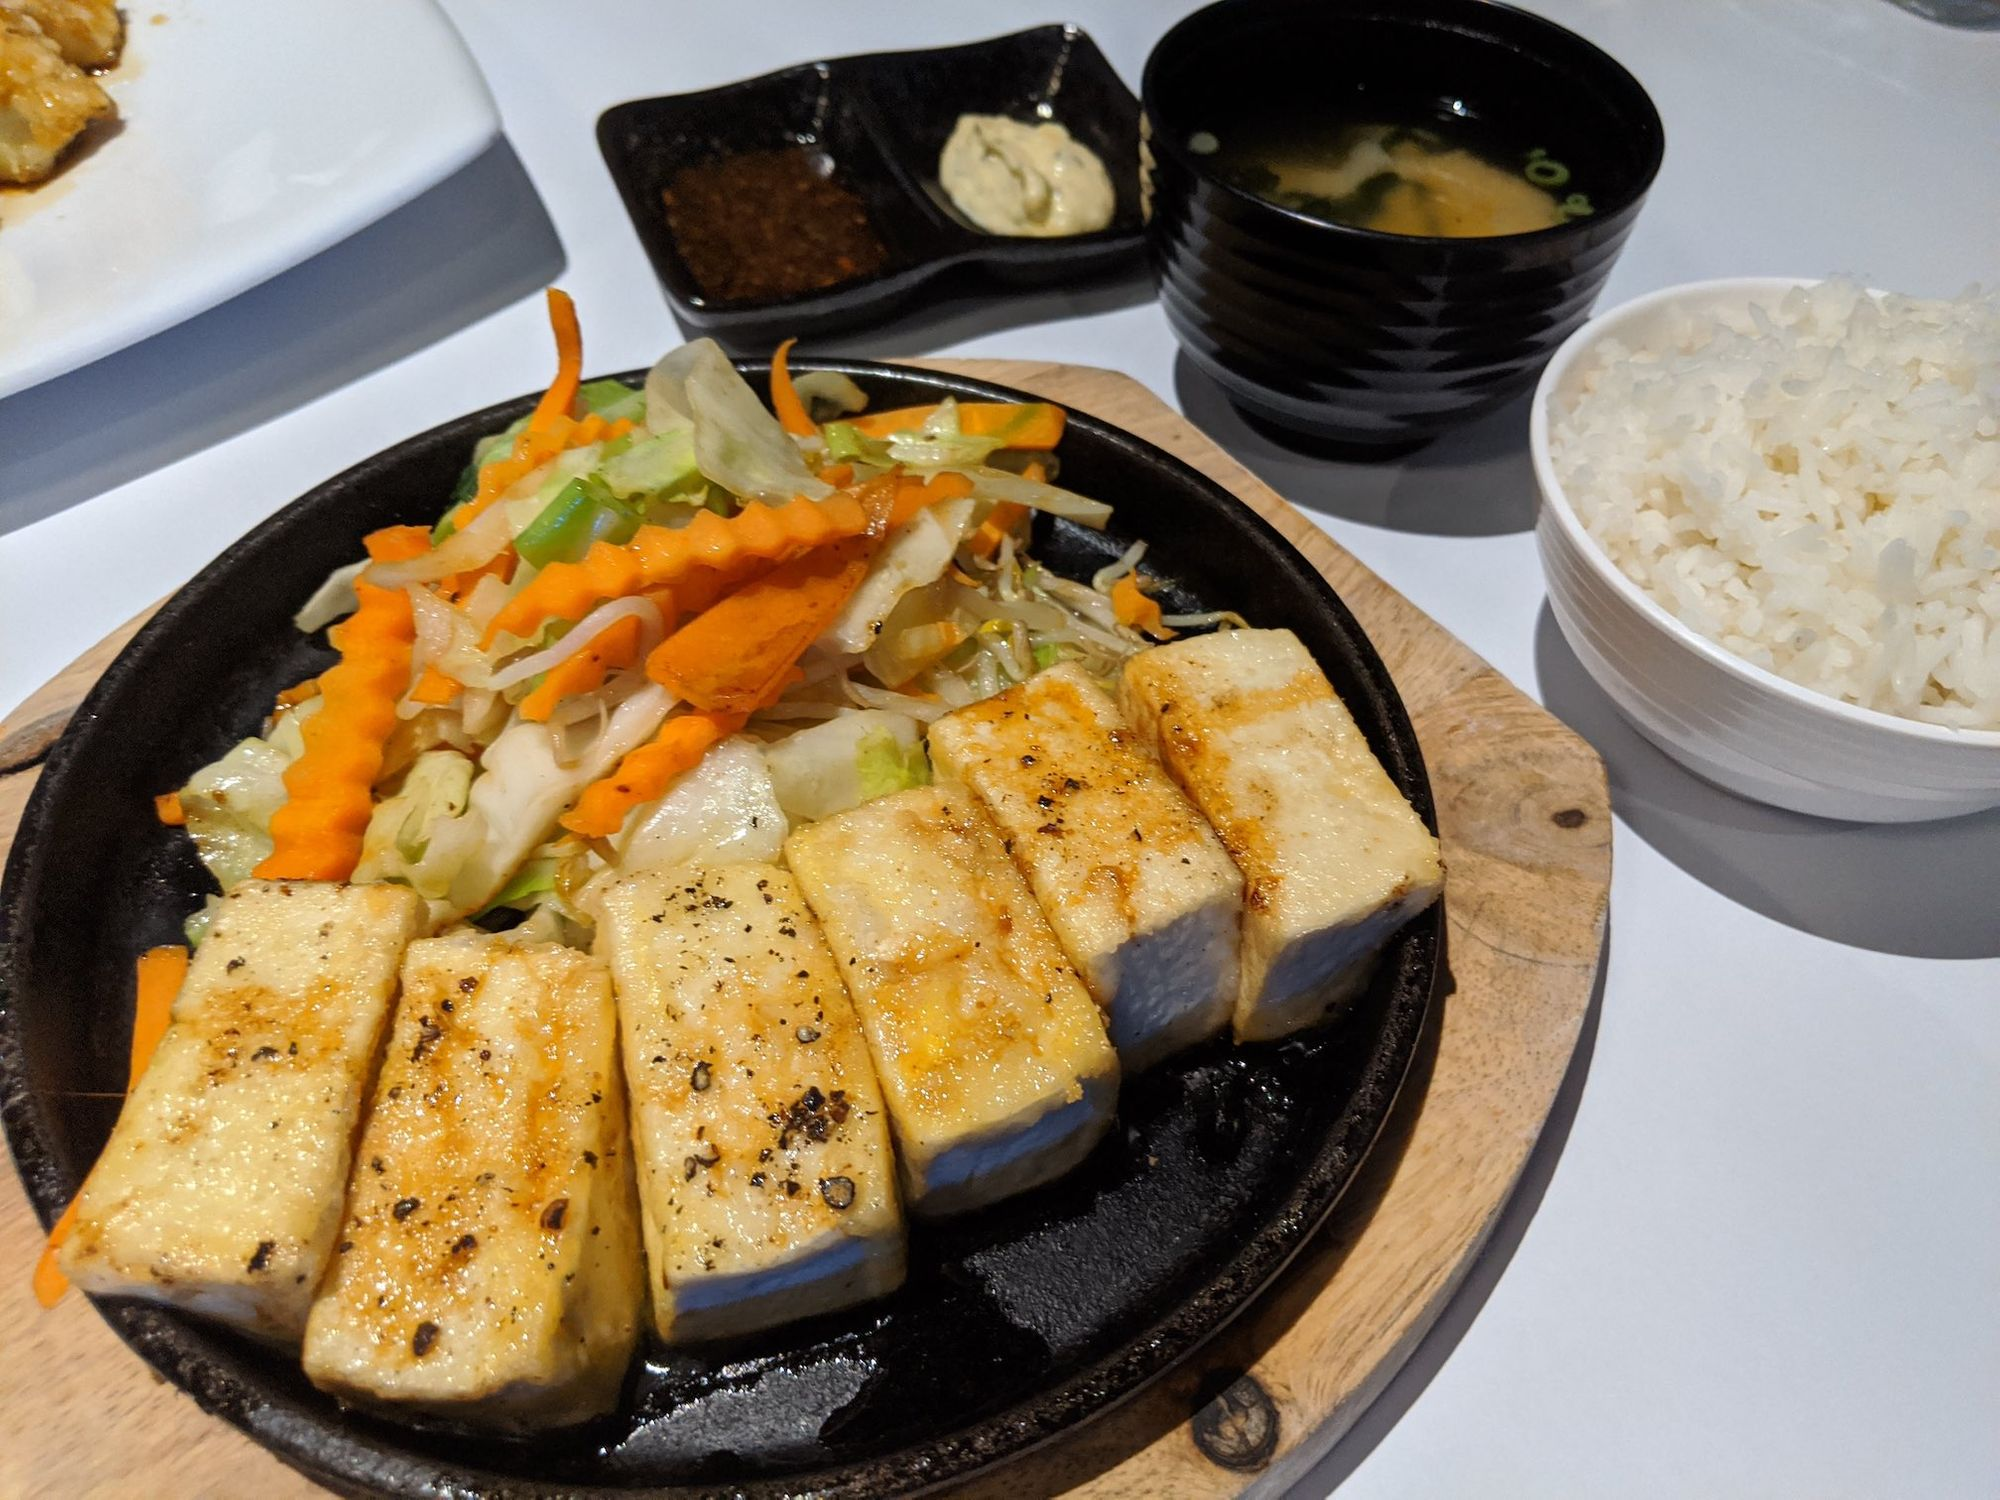 Tofu, veges on hotplate, with side of rice.